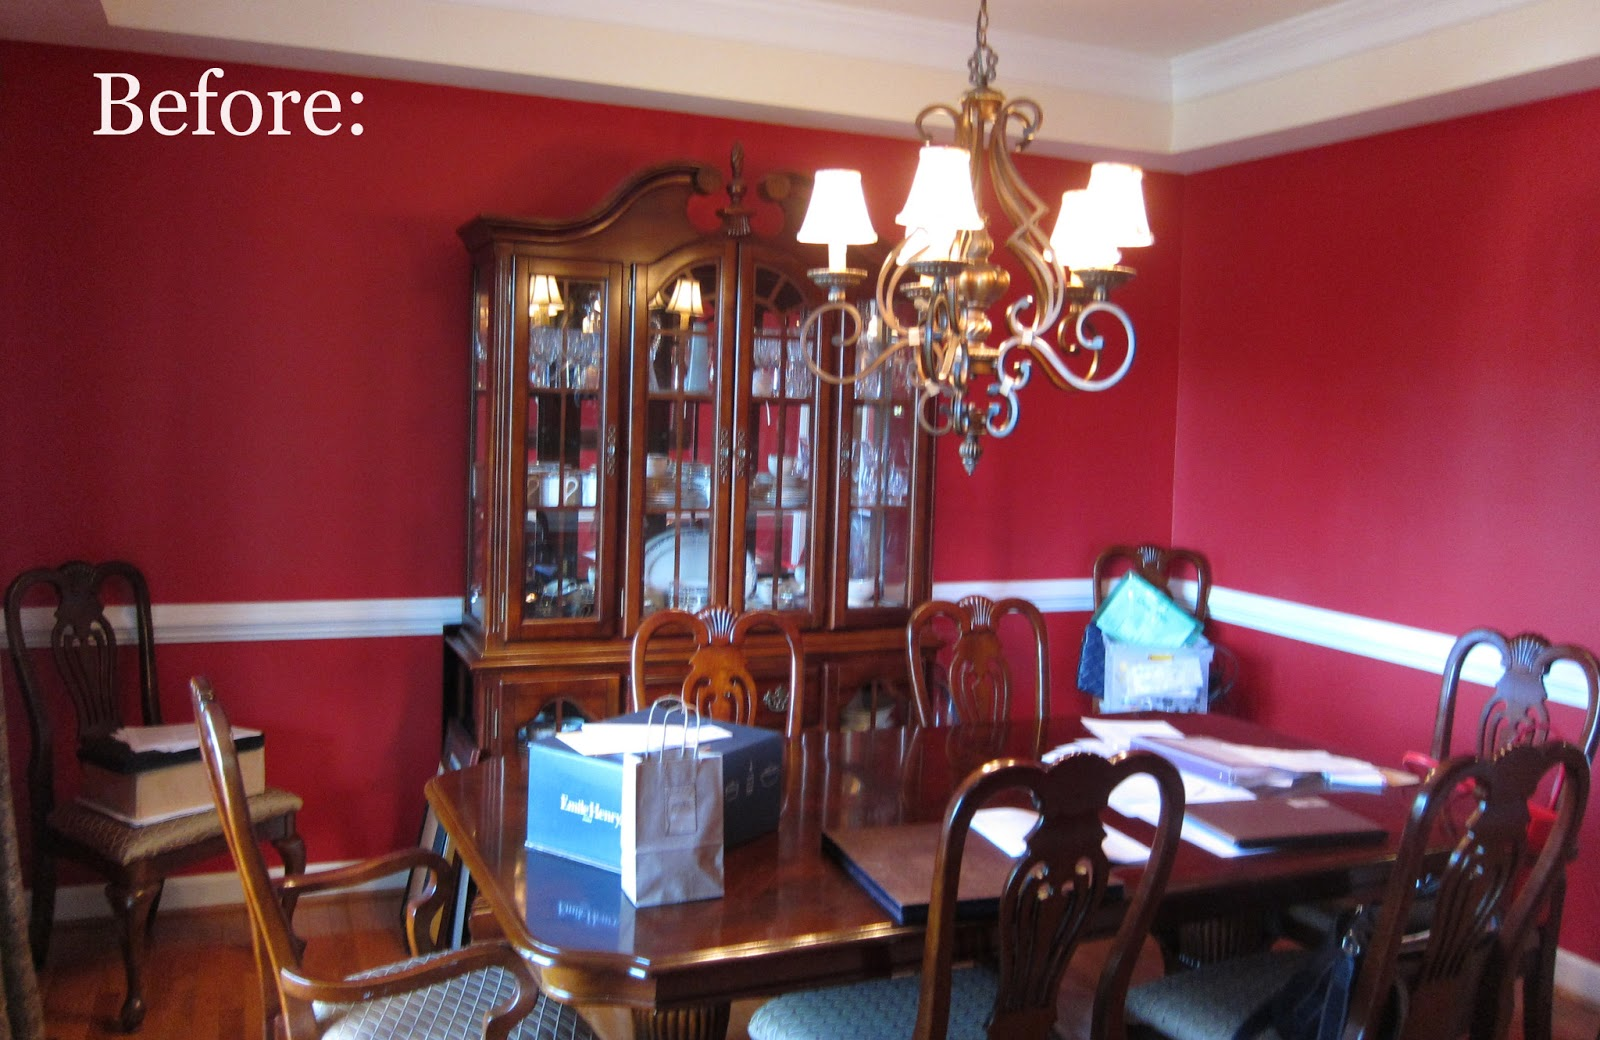 http://homeemoney.com/wp-content/uploads/parser/red-dining-room-walls-1.jpg